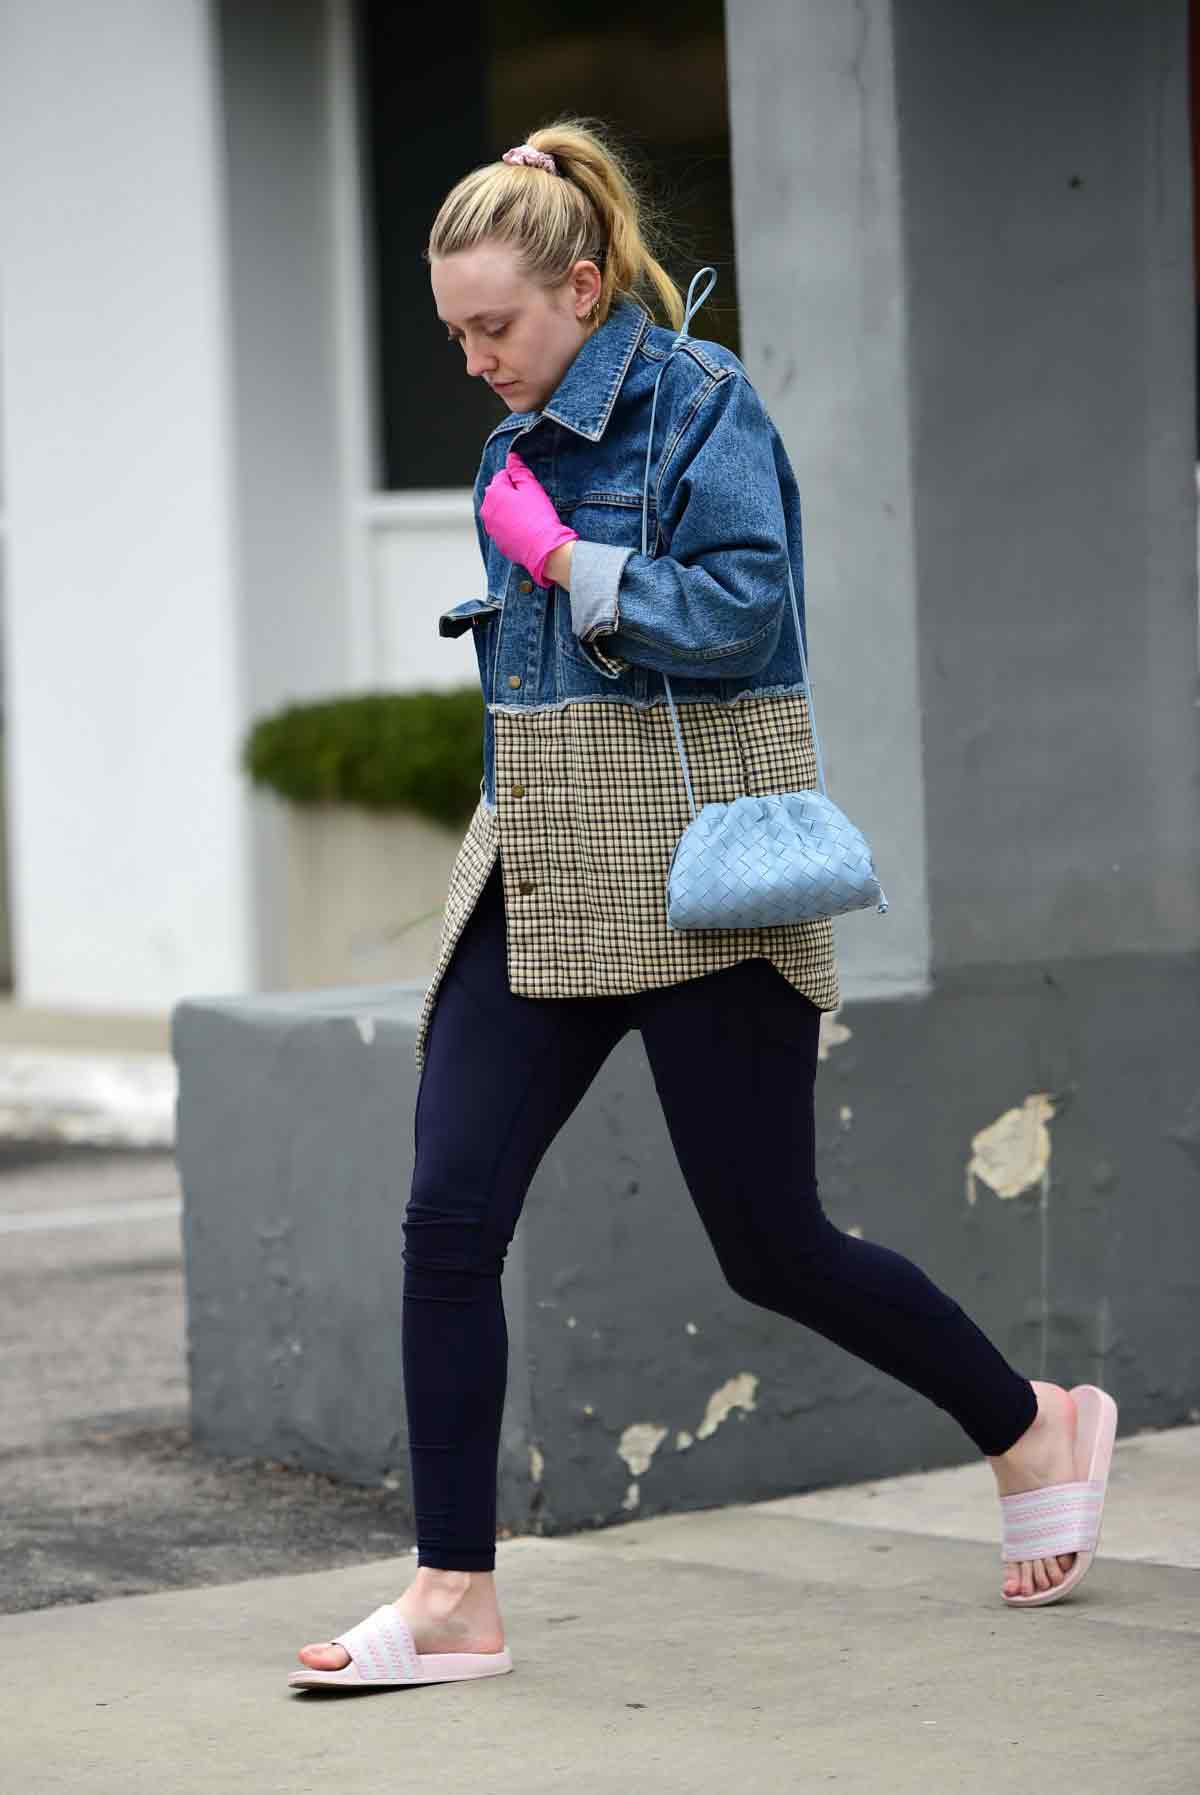 Dakota Fanning's Jean Jacket with Leggings